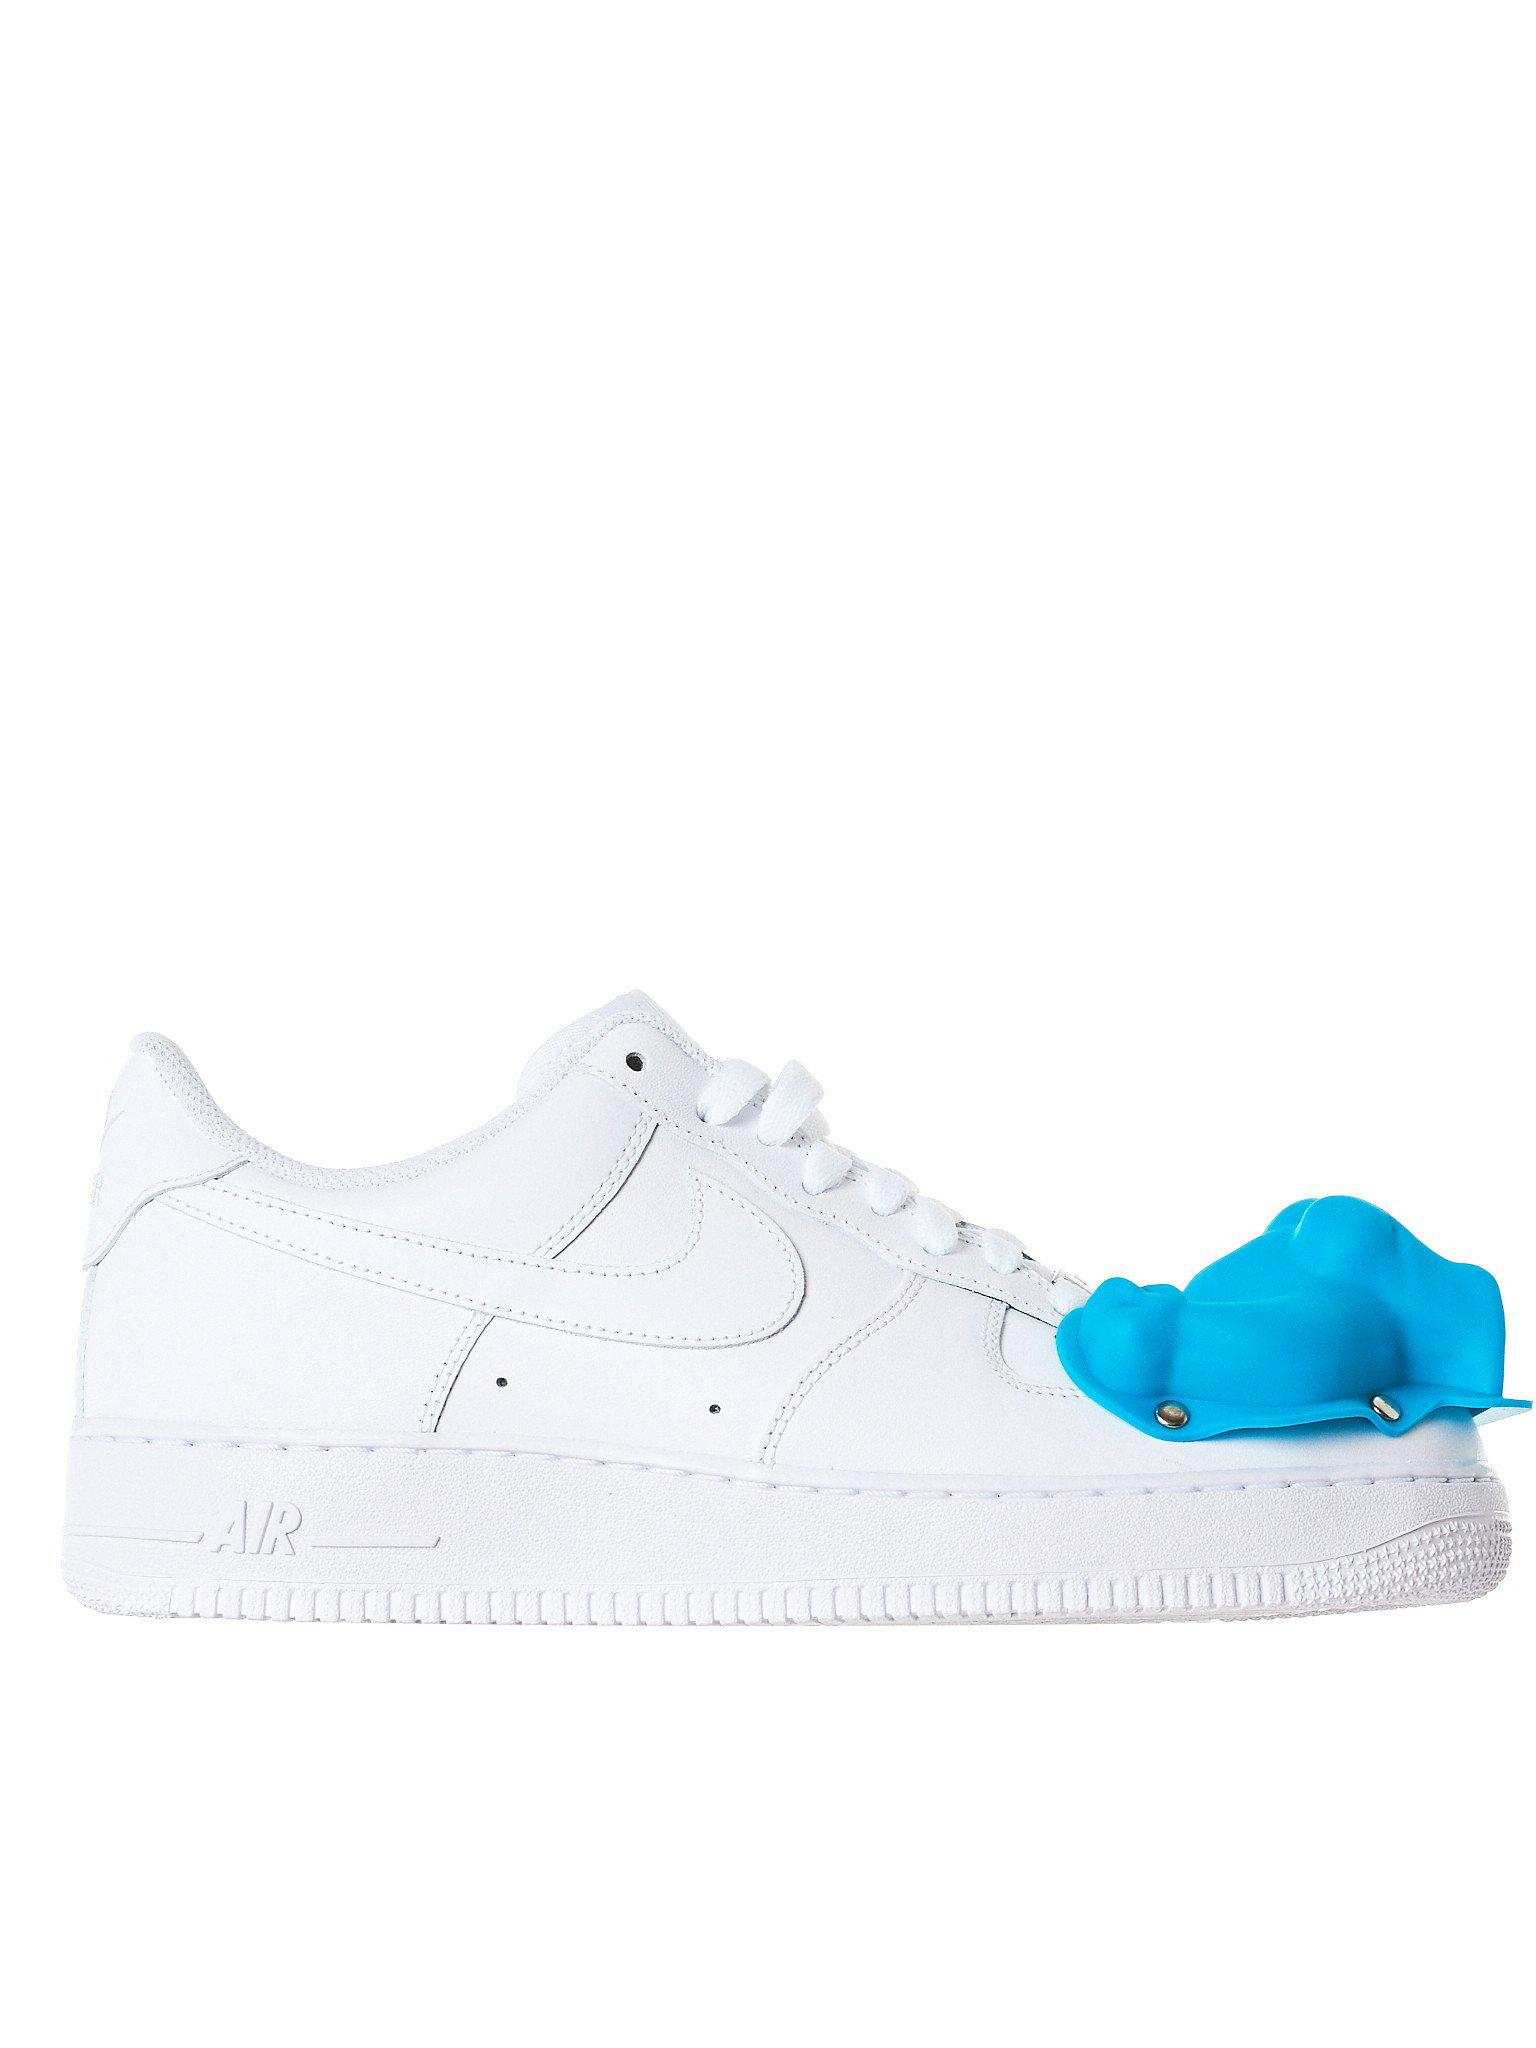 factory authentic 7c4aa ae46b Comme des Garçons Blue Nike Moulded Dinosaur Air Force 1 Sneakers